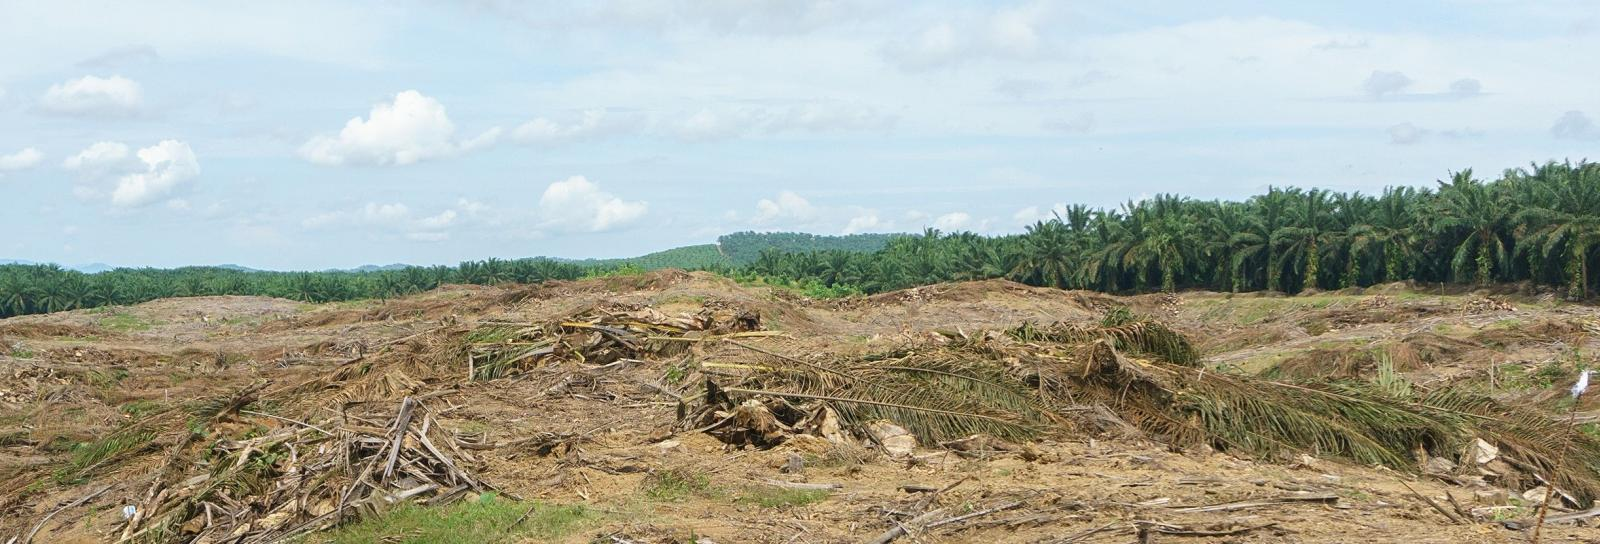 deforested land